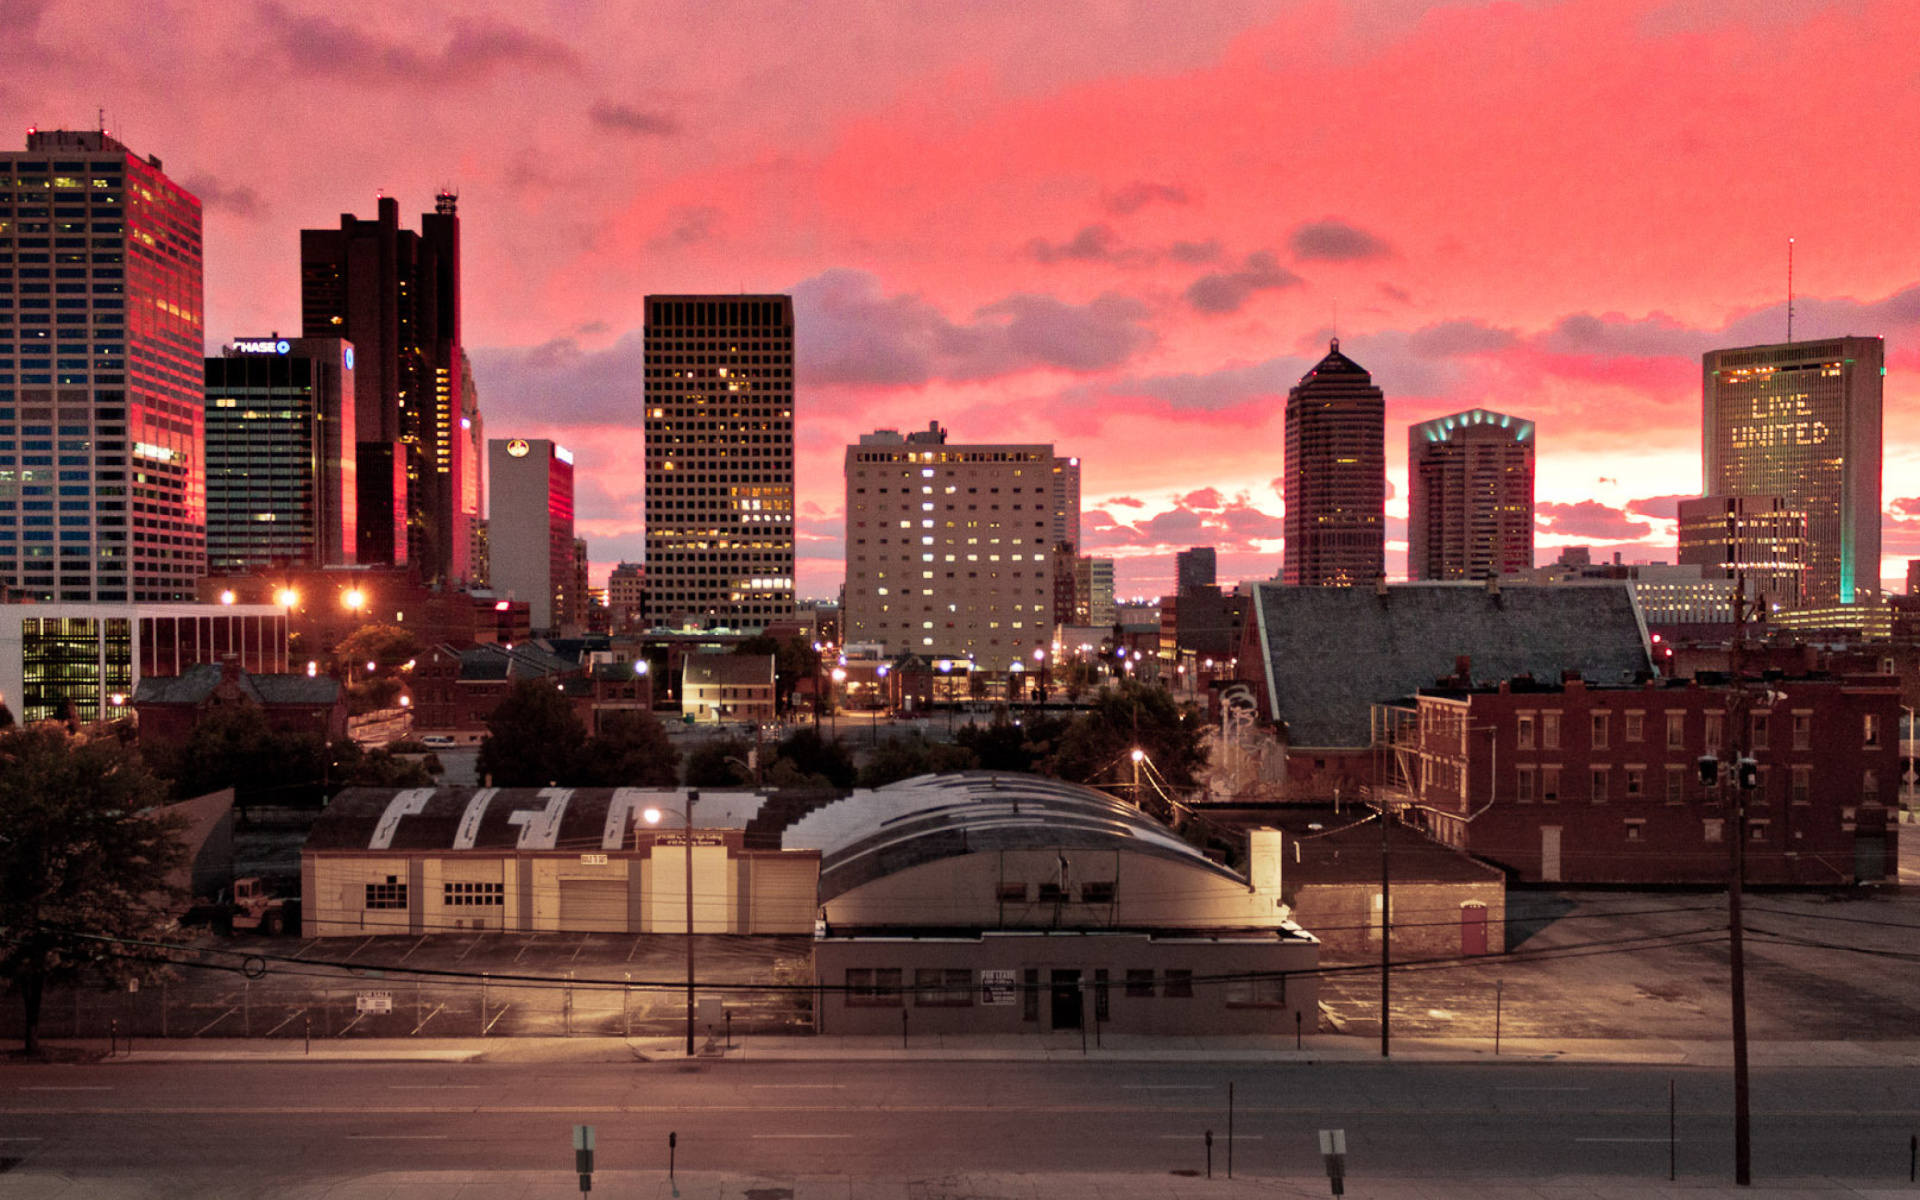 columbus ohio wallpaper - photo #5